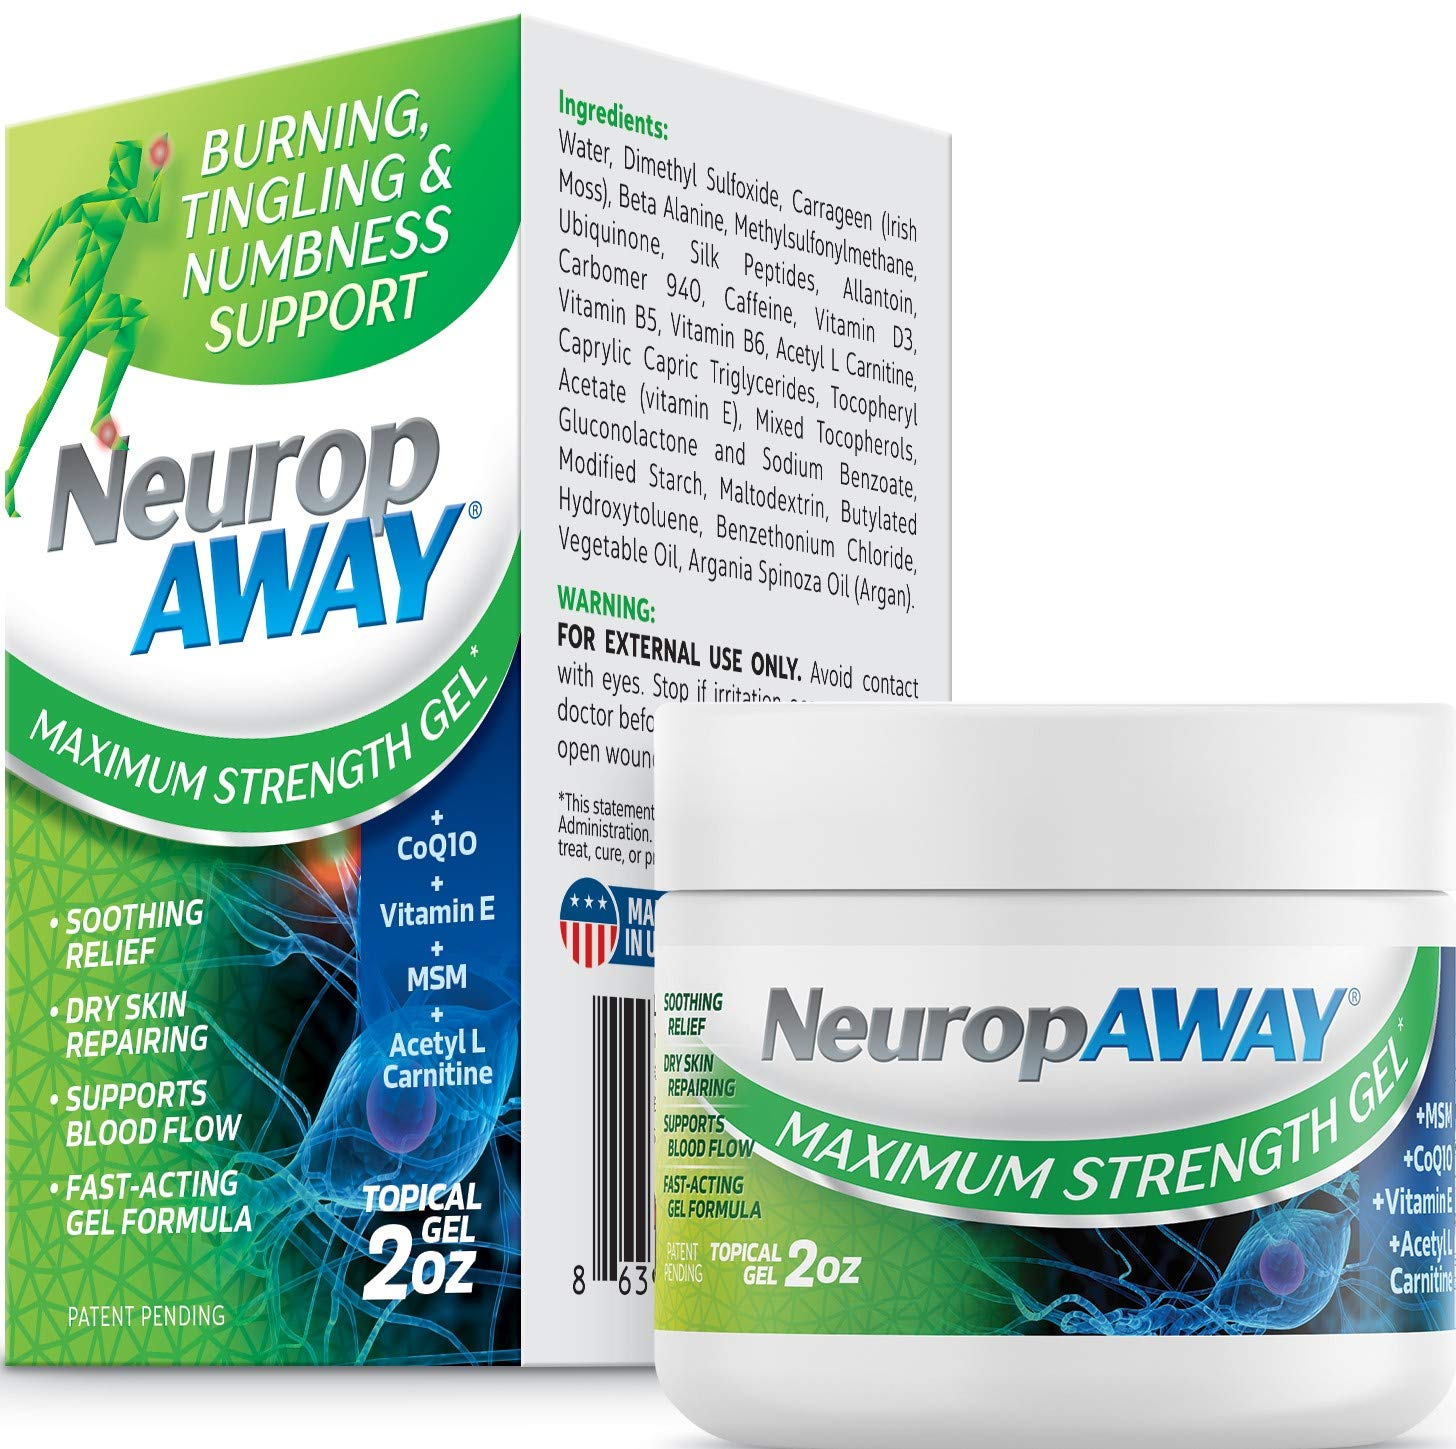 VasoCorp NeuropAWAY Neurop Pain Relief | 2 oz Maximum Strength Gel Nerve Pain Relief and neurop Pain Relief for feet, neurop Support for Burning Numbness Pain in Legs and feet Topical Gel.